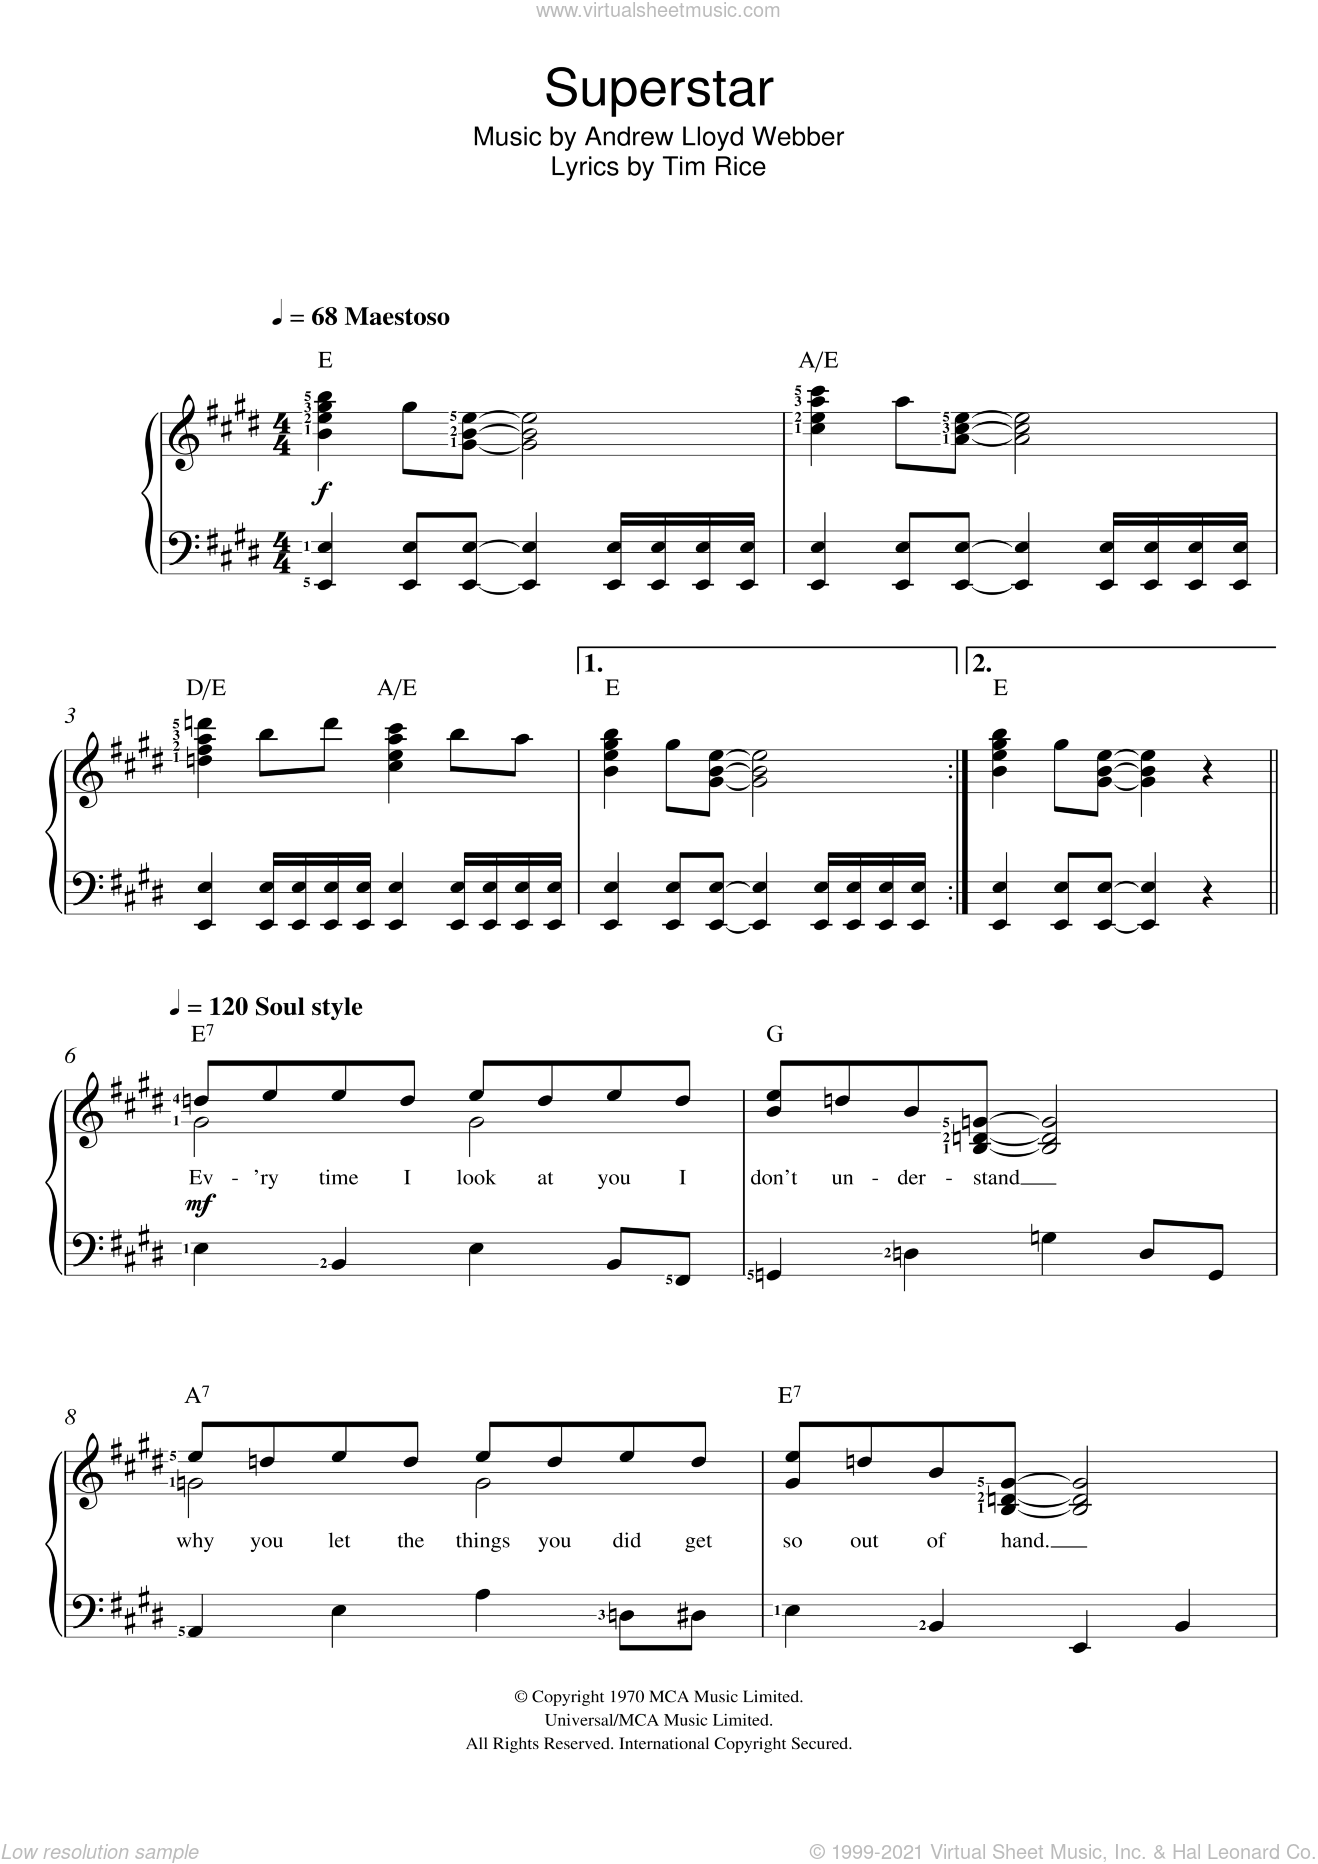 Jesus Christ, Superstar sheet music for voice and piano by Andrew Lloyd Webber and Tim Rice, intermediate skill level